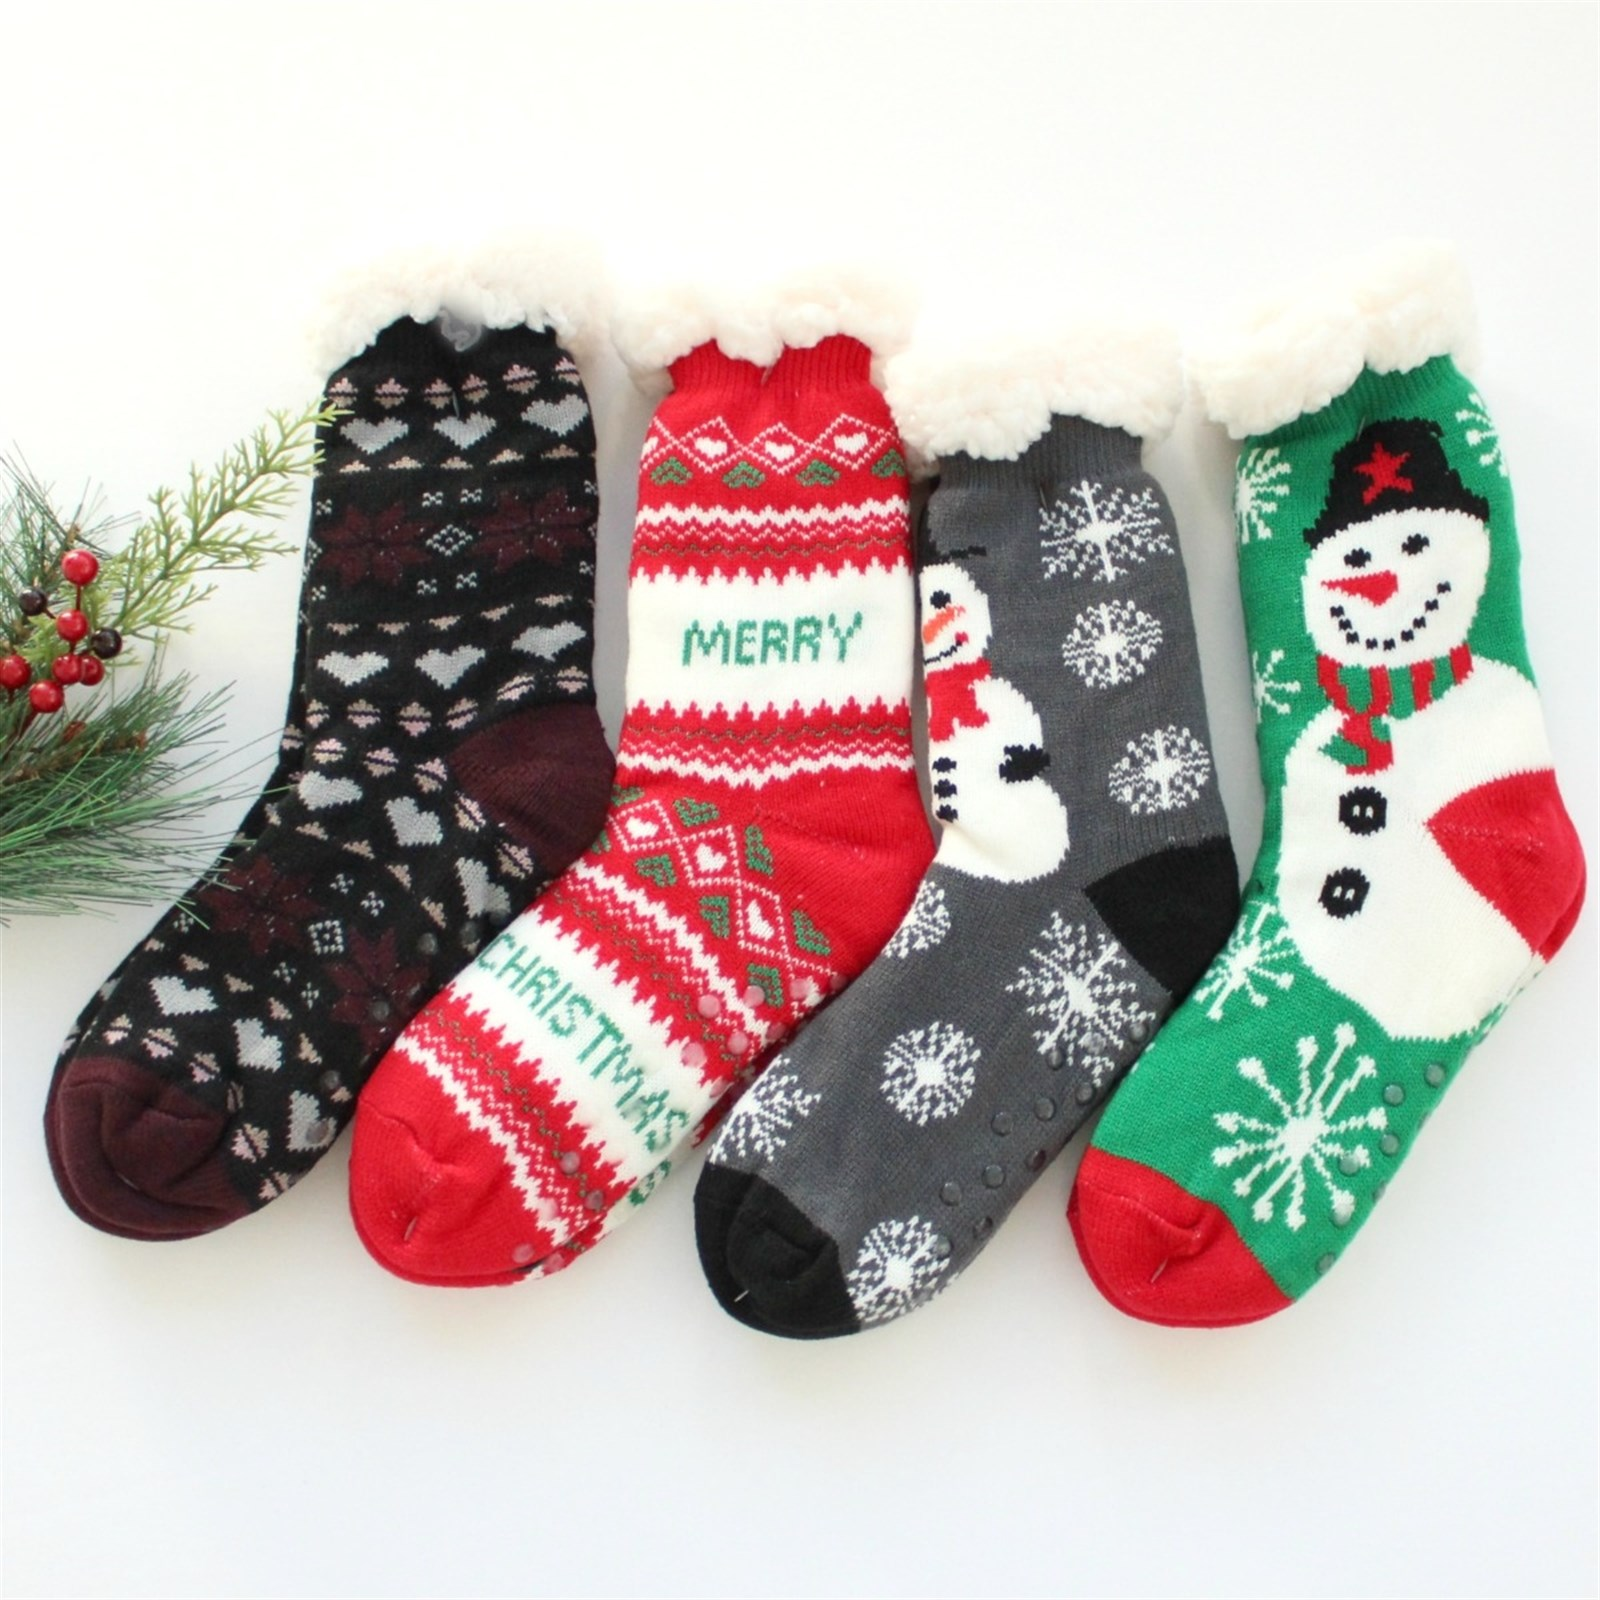 Jane: Holiday Print Sherpa Slipper Socks ONLY 7.99 + FREE Shipping! Reg. $14.99!